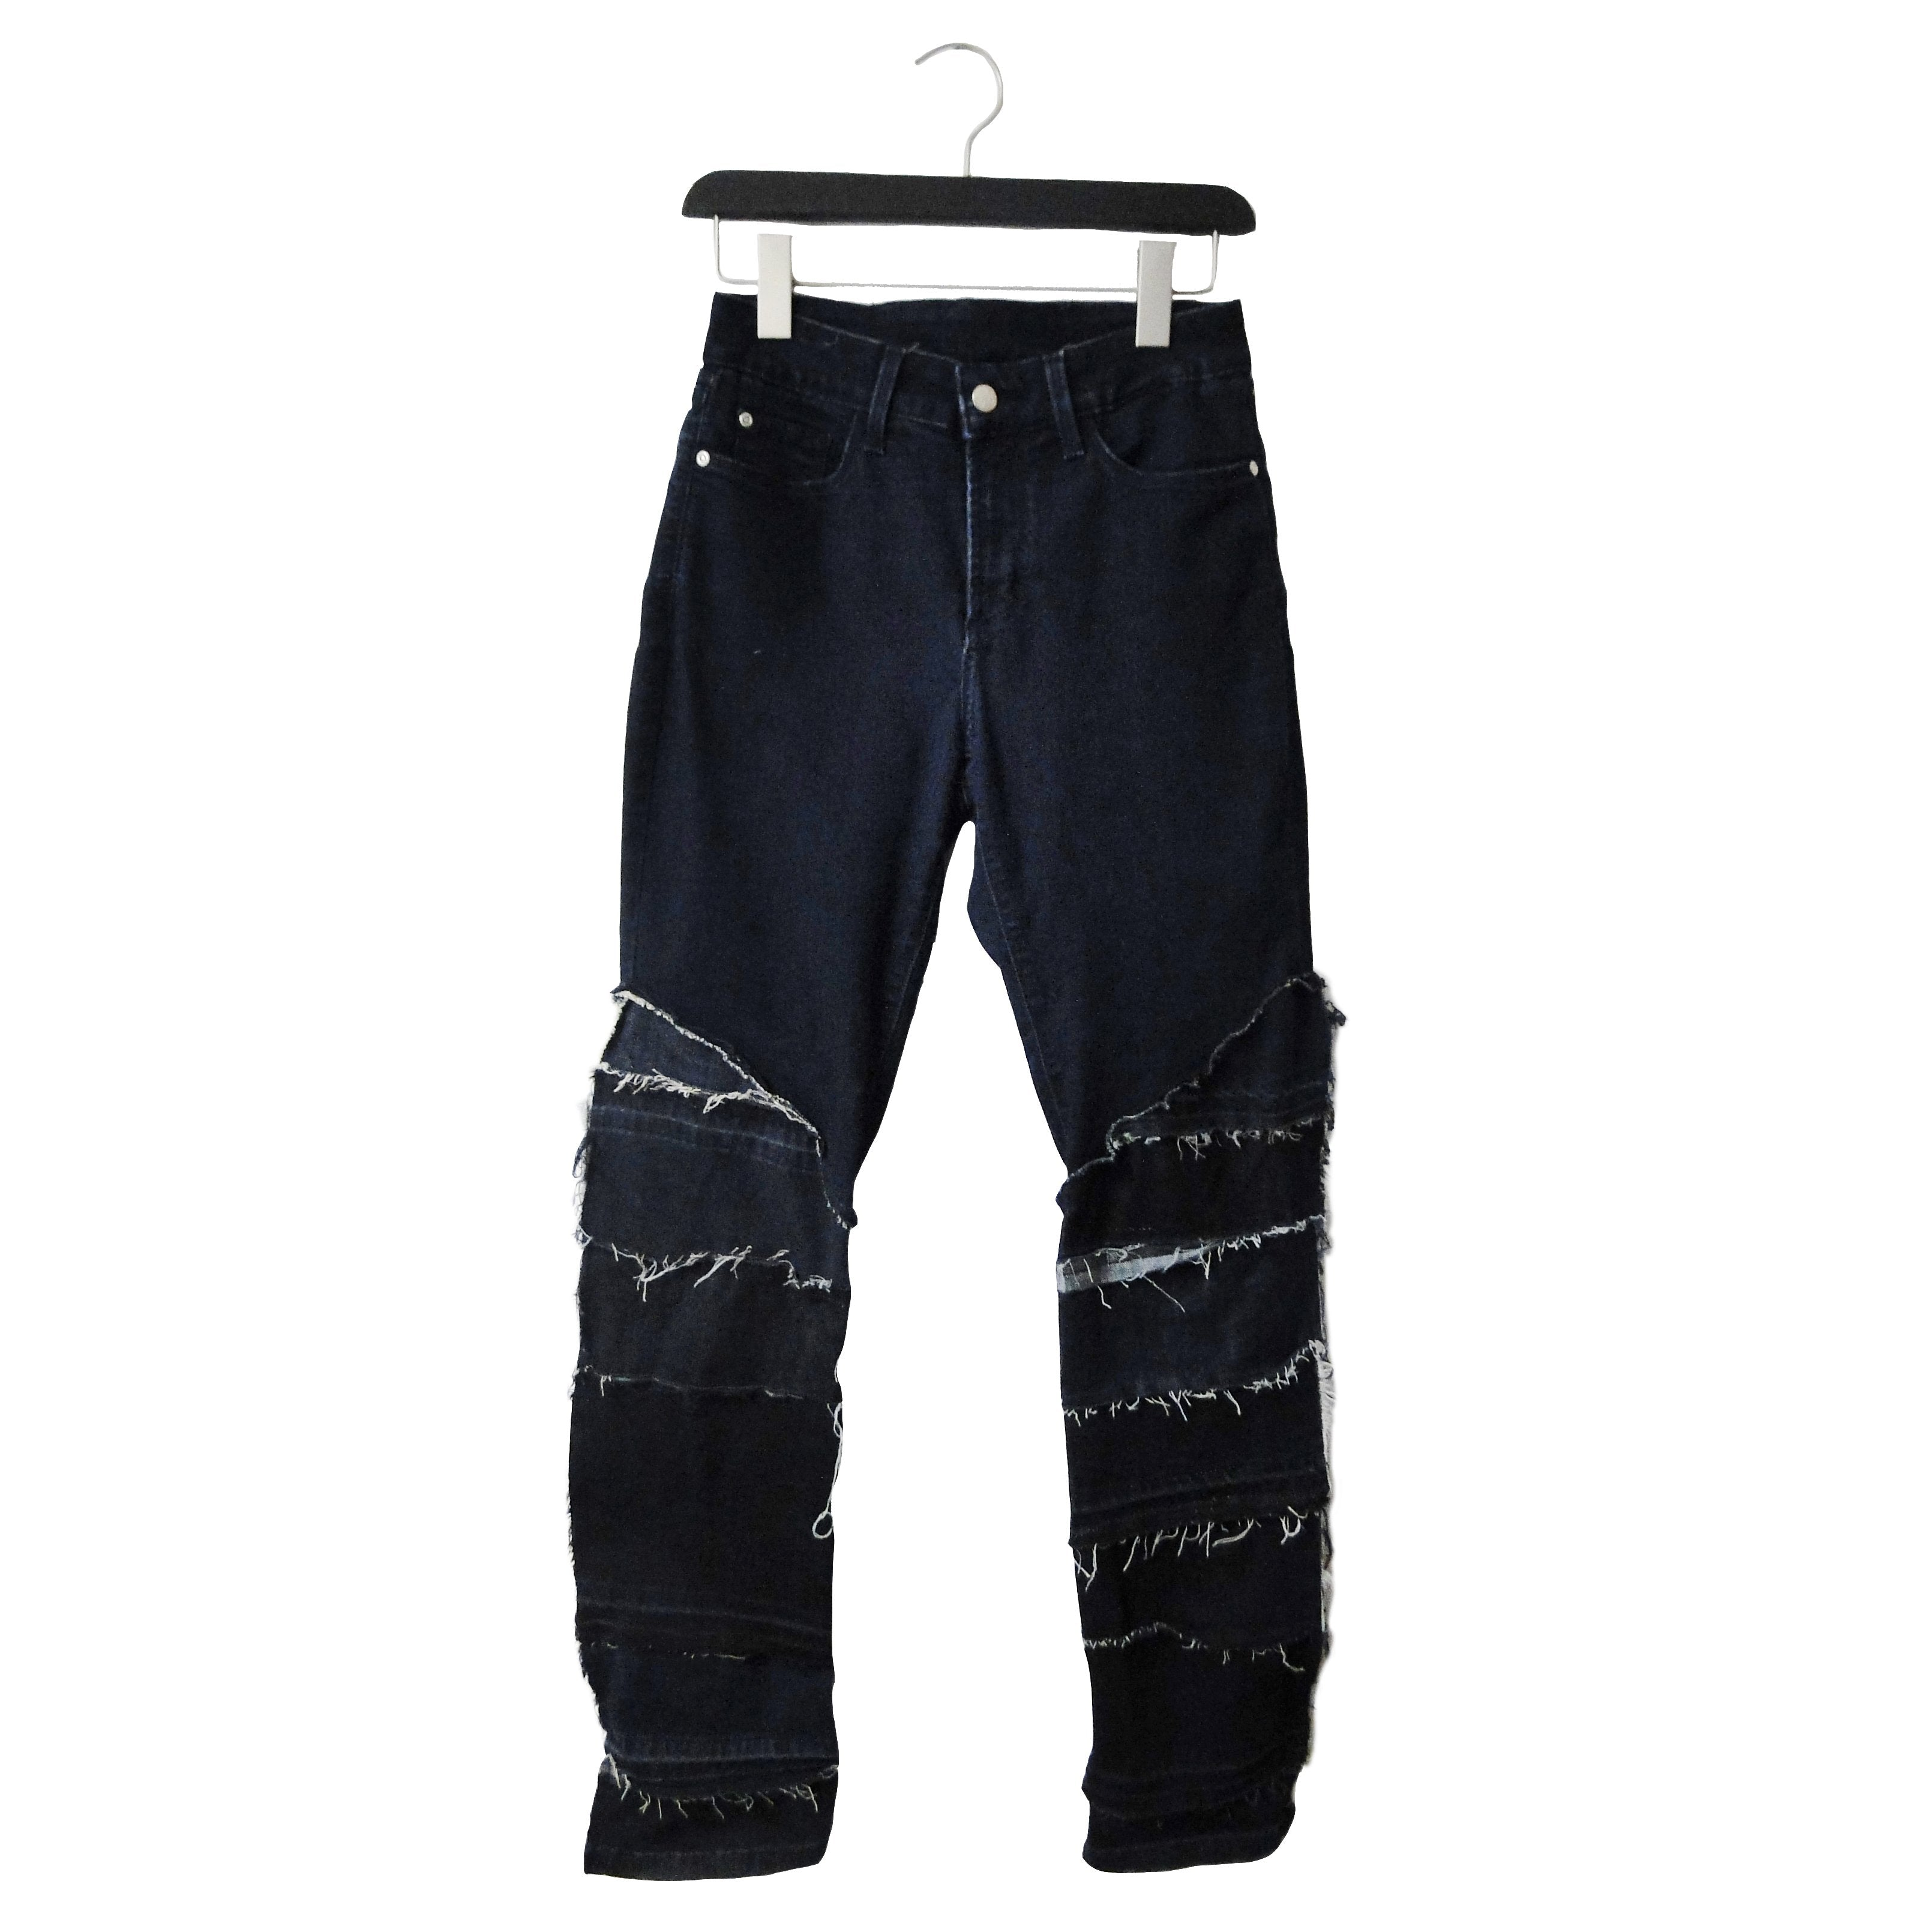 #REMIXbyStevieLeigh upcycled moto blue jeans